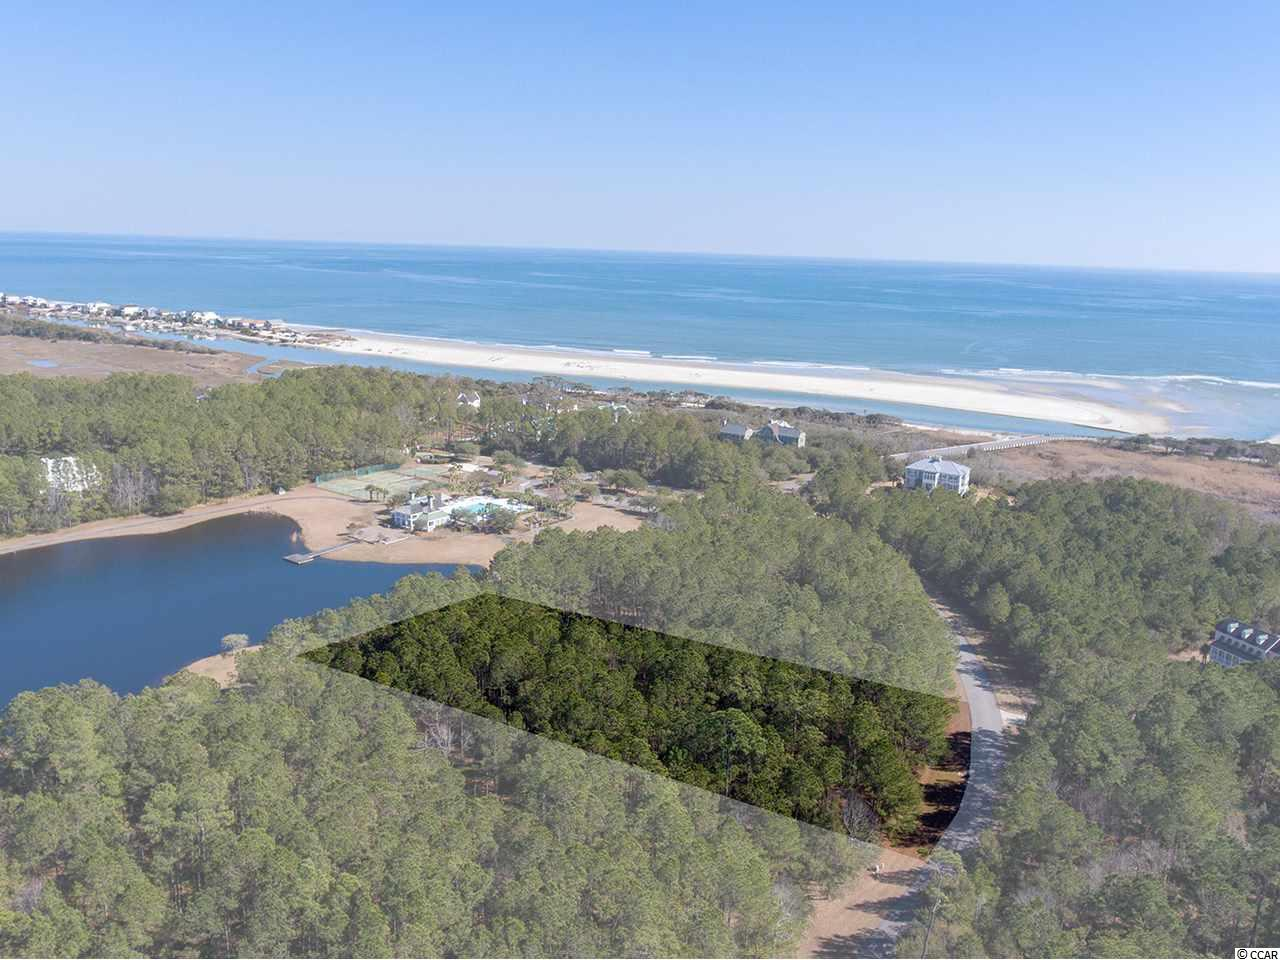 Come enjoy the stunning beauty of the oceanfront, gated community of Prince George in Pawleys Island, SC.  Prince George has long been known as one of the most pristine and private areas on the East Coast.  Lot 107 overlooks the lake and Ocean Clubhouse and is already cleared, ready for building!  You're just a short walk away from the Prince George amenities including tennis, a pool, playground and volleyball and this lot is high and dry!  You can drive onto the lot to check out the views...come see today.